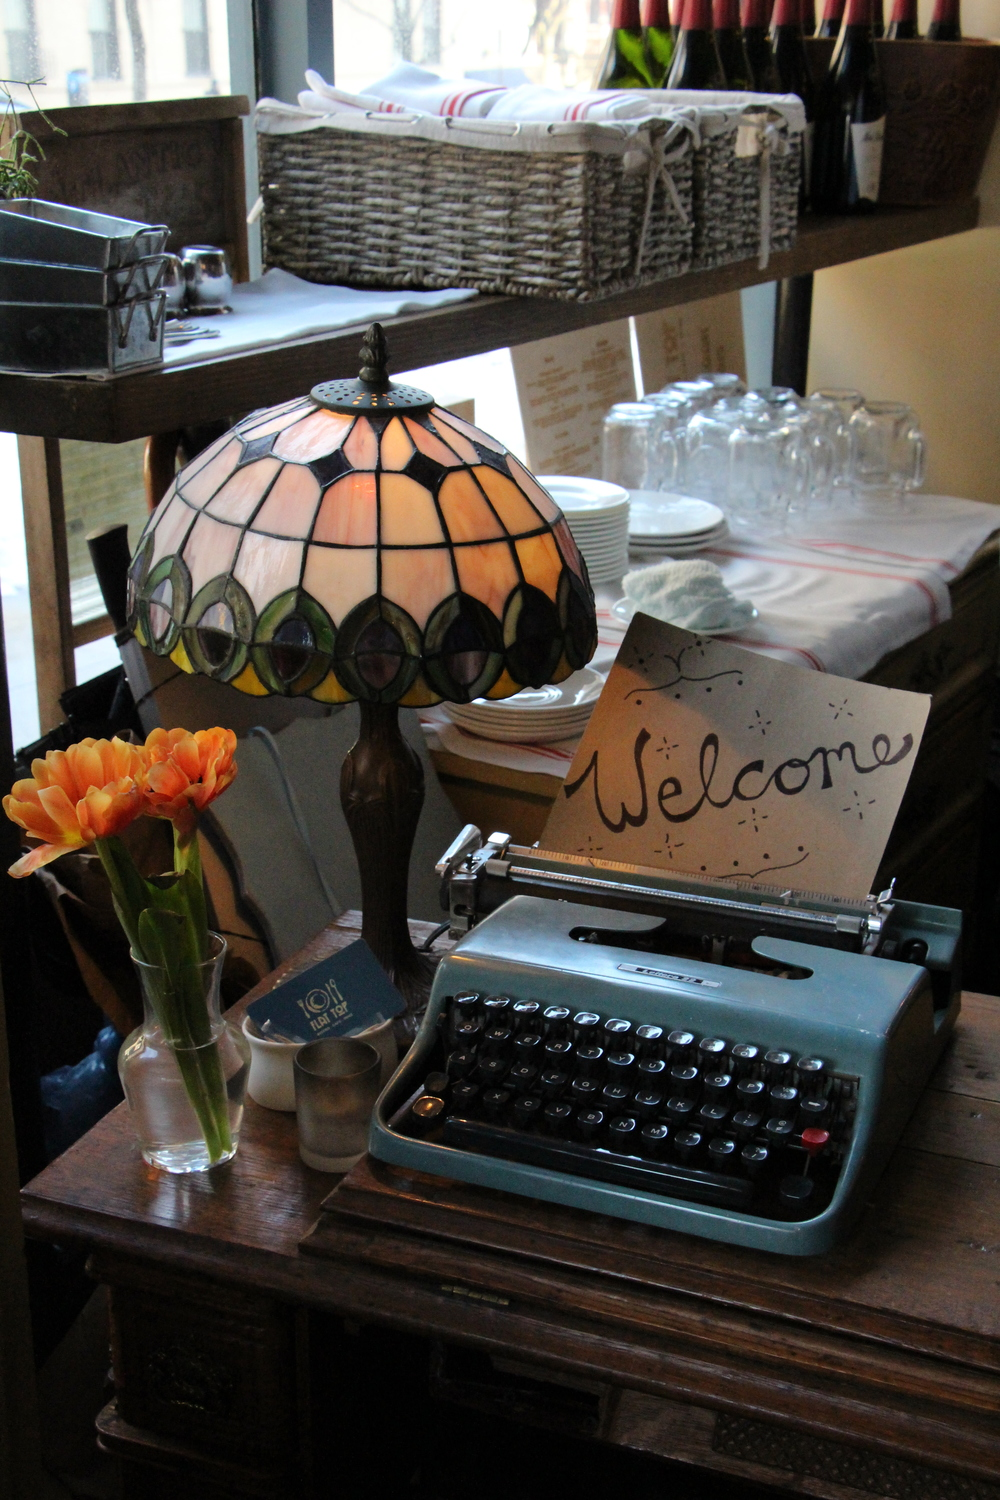 Digging the stained glass lamp and typewriter